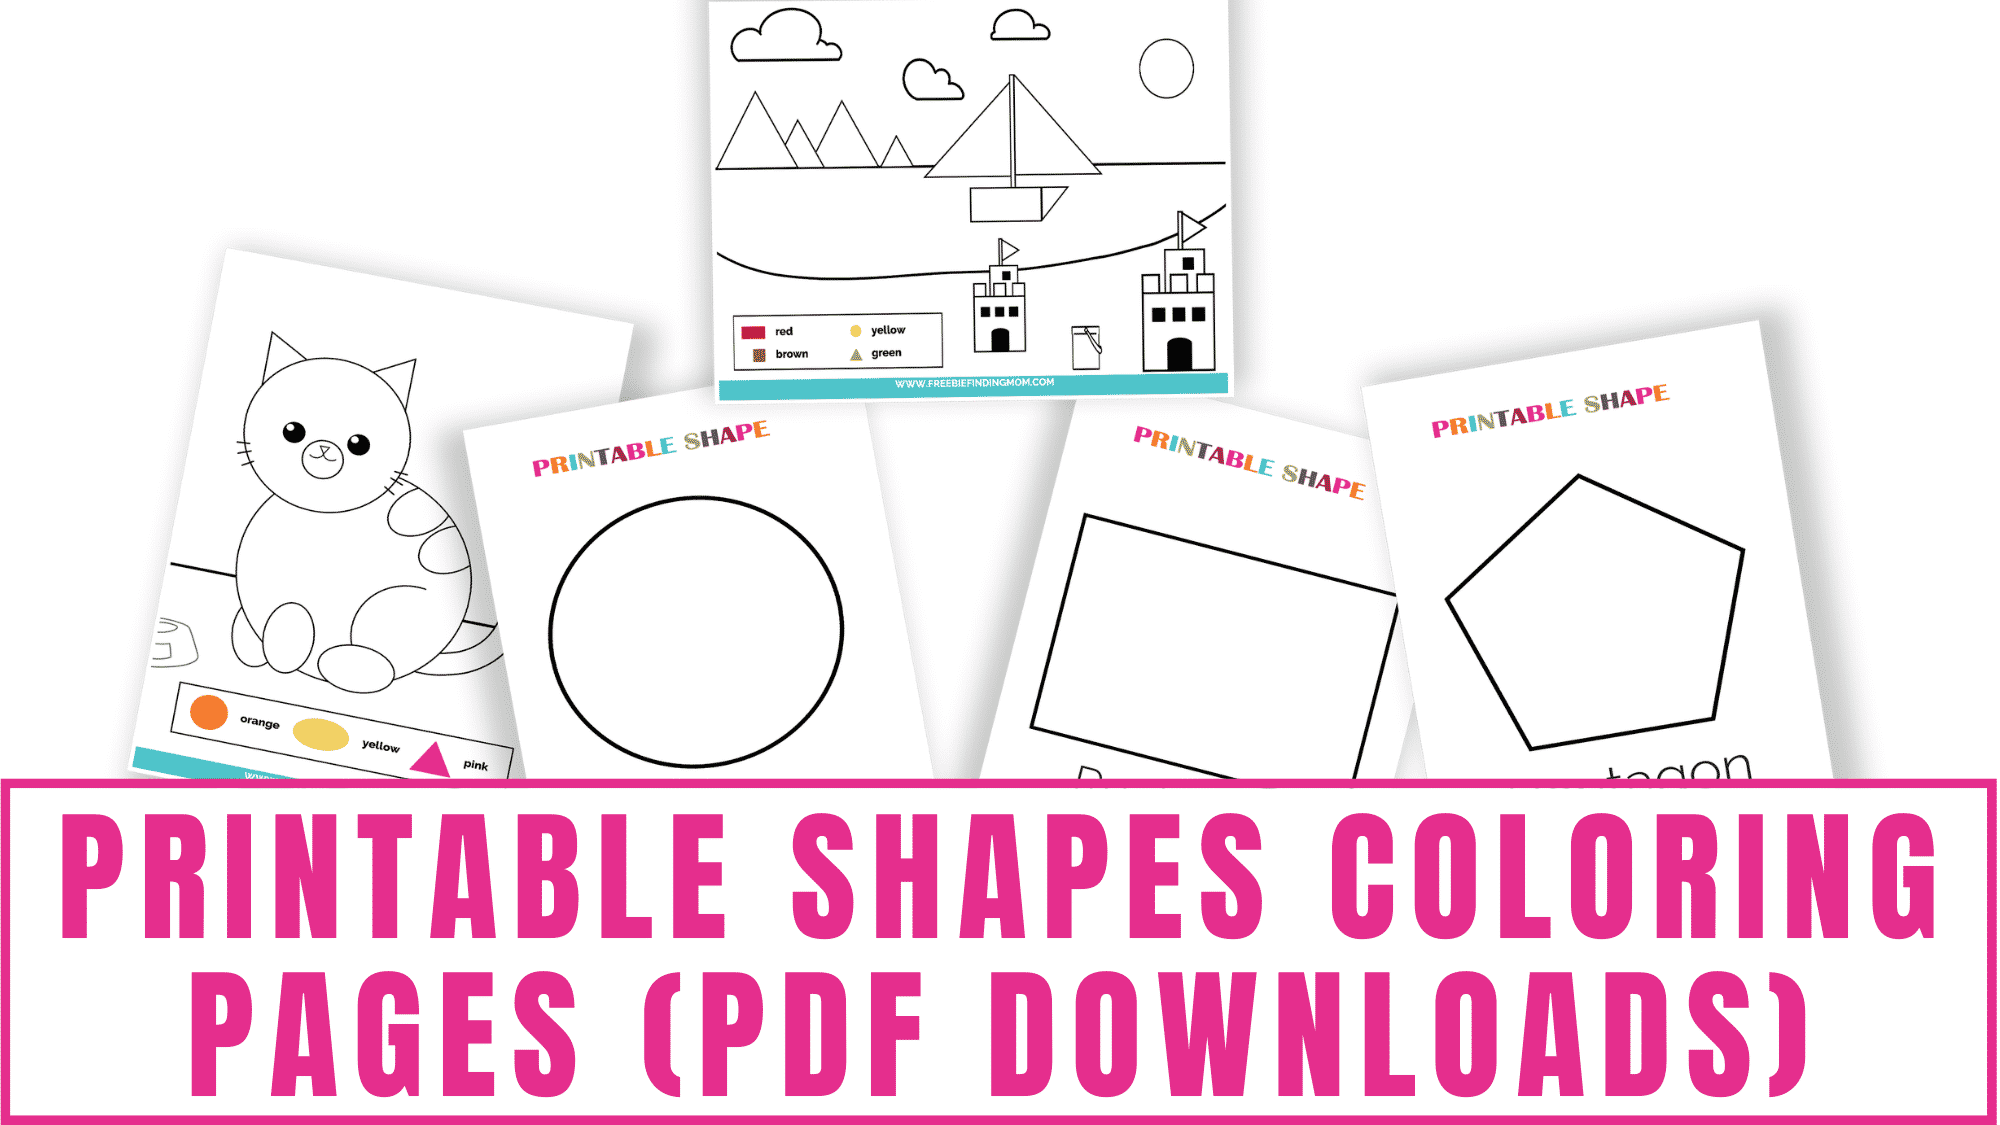 These printable shapes coloring pages pdf downloads make learning shapes fun and easy. Whether you have a toddler or a kindergartener you'll find a color shape worksheet that's perfect for them.